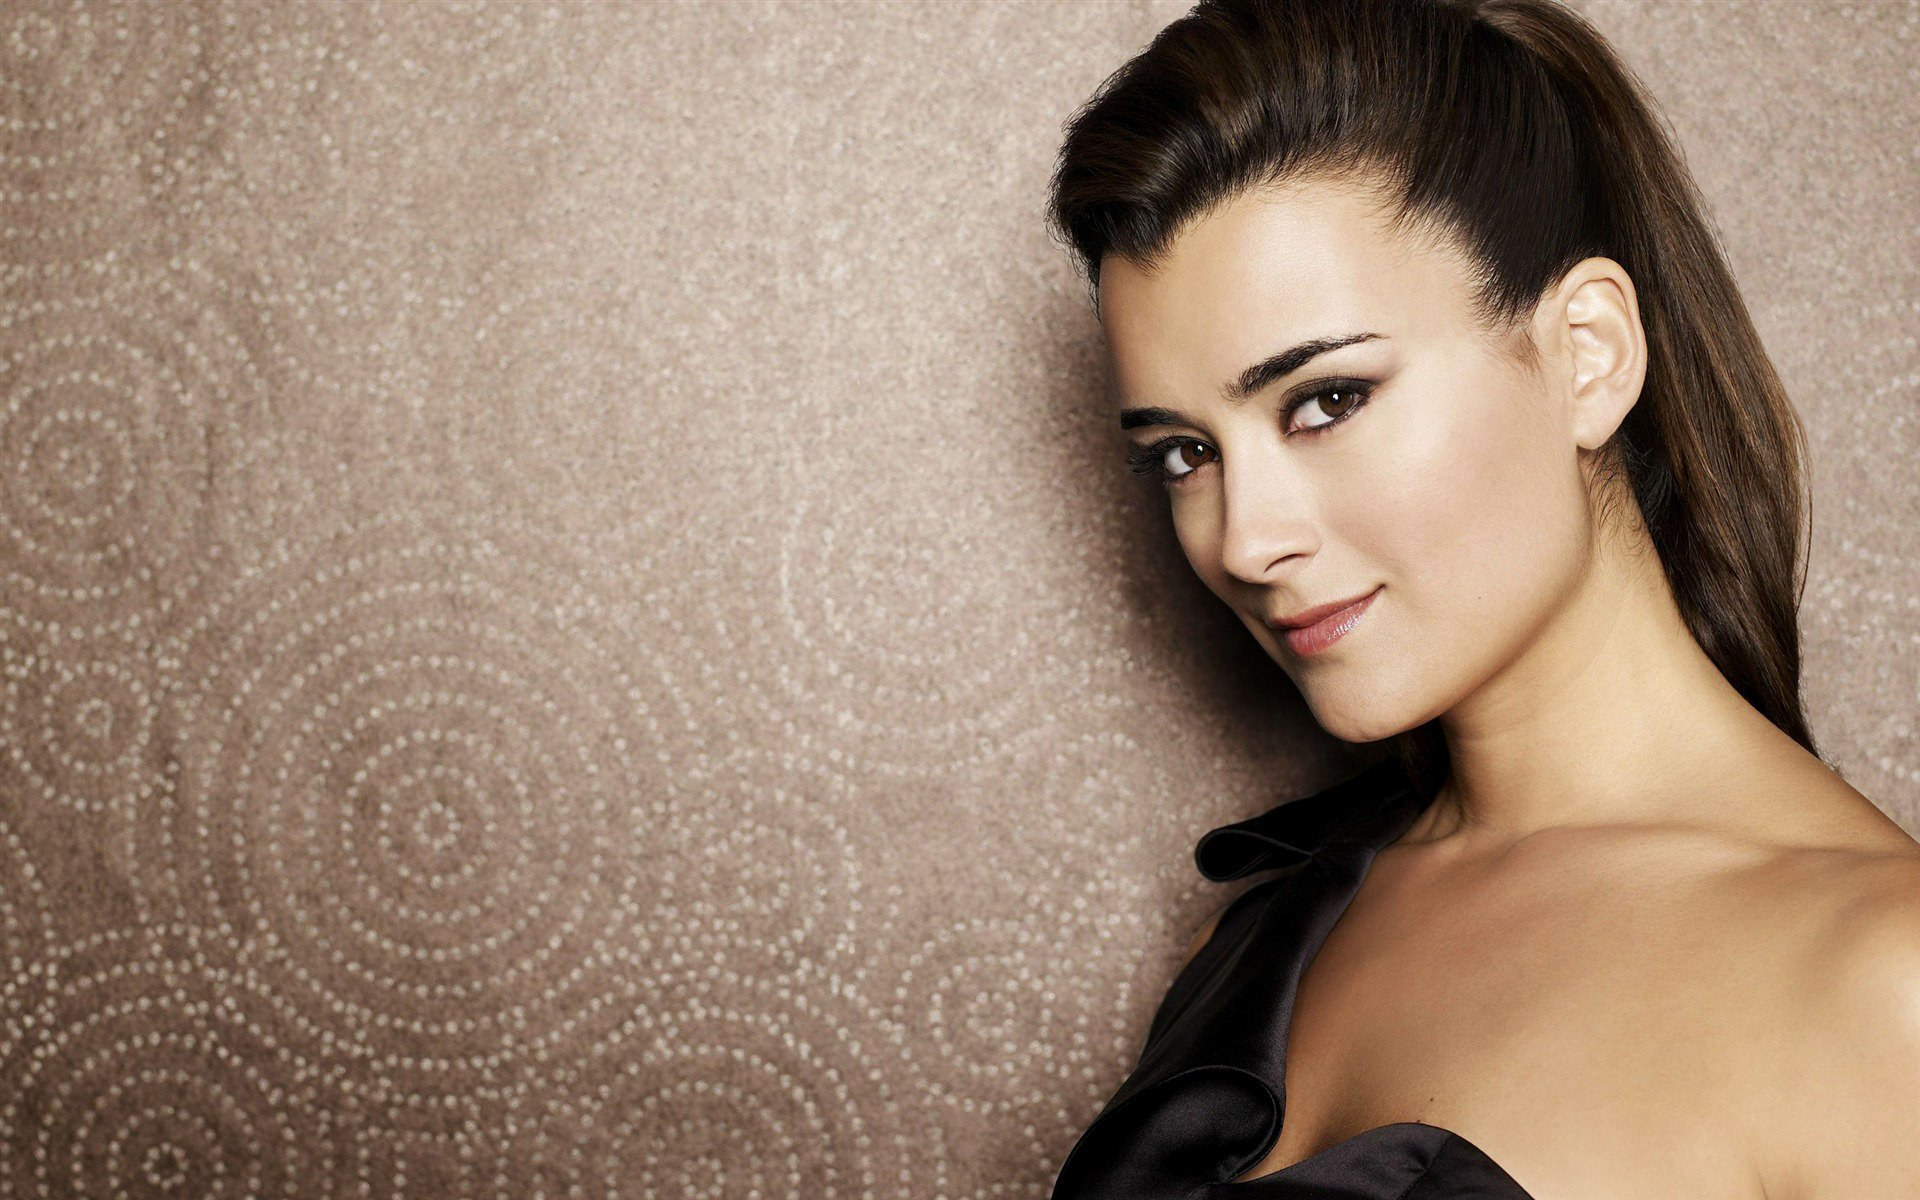 44 Cote De Pablo Hd Wallpapers Background Images Wallpaper Abyss